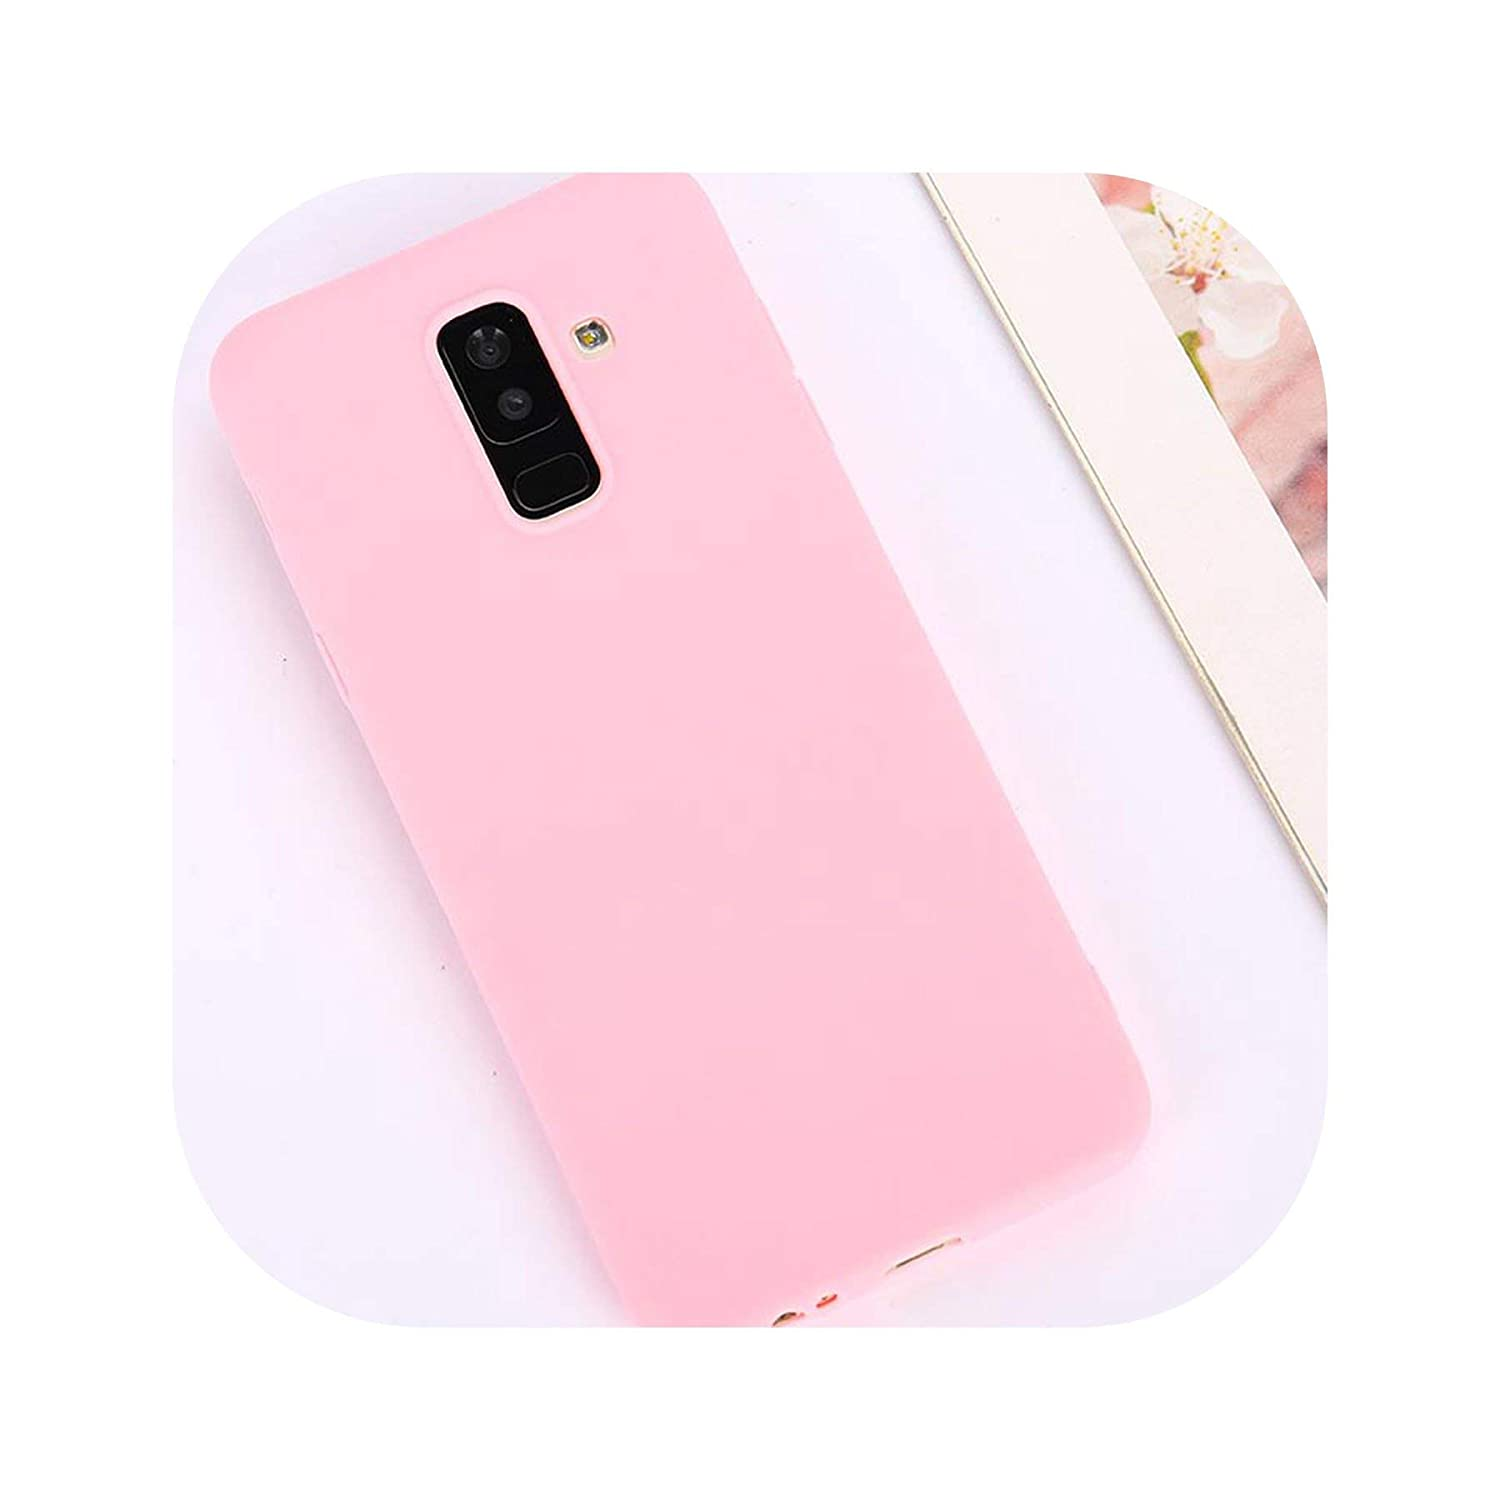 Candy Color Case for Samsung Galaxy A50 A70 A5 2017 J4 J6 Plus J8 A8 A6 A7 2018 S8 S9 S10 Plus S10E Note9 M20 Soft Cover,Rose Pink,S8 Plus